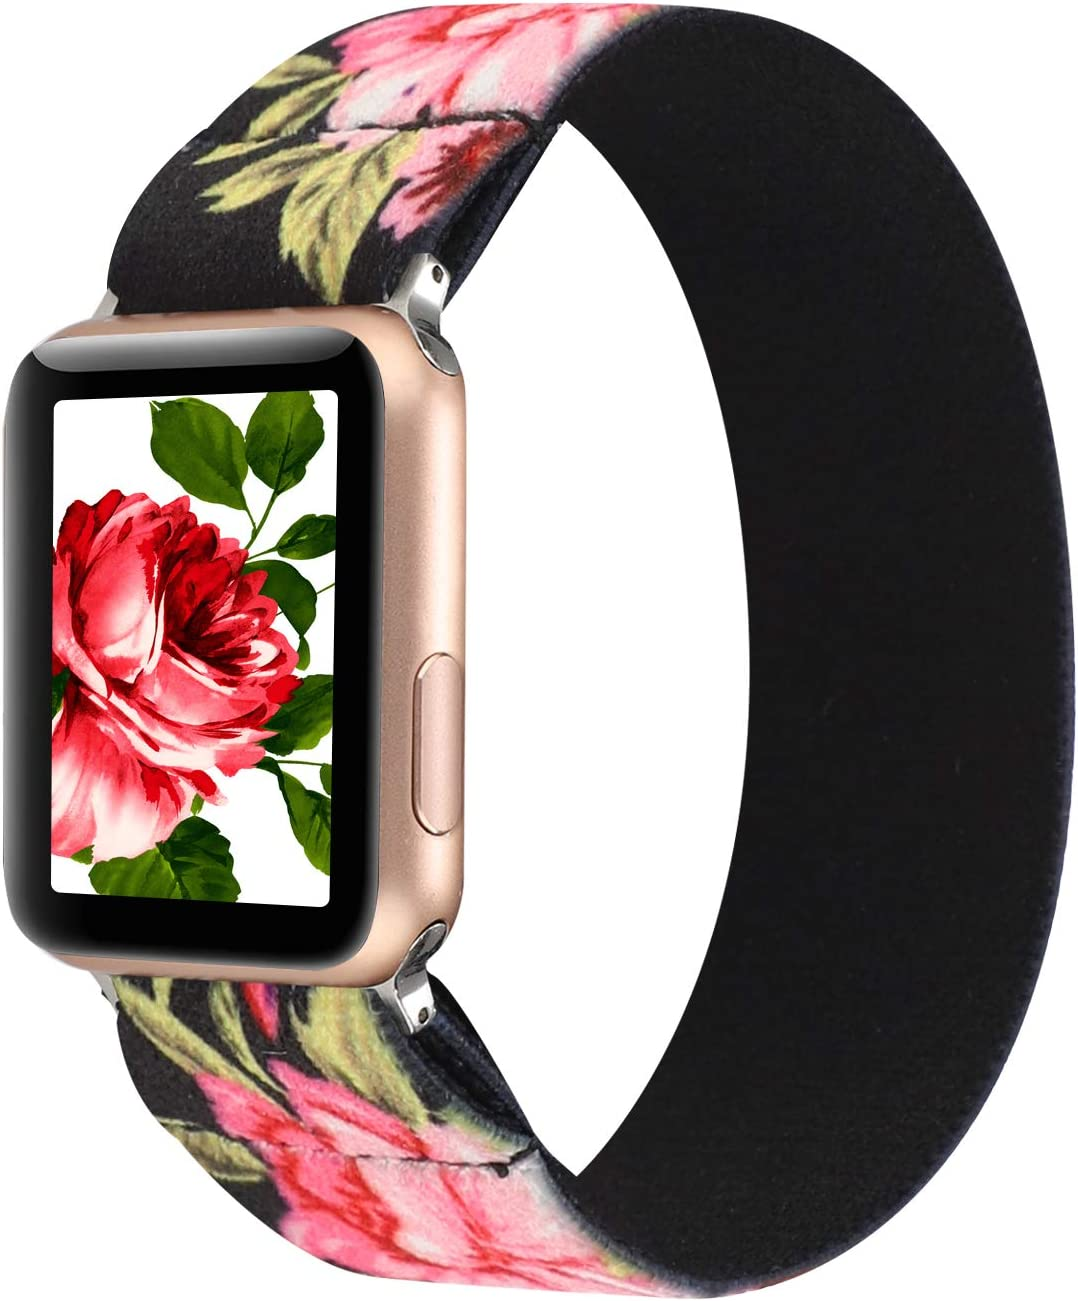 PENKEY Women Elastic Watch Band Compatible for Apple Watch 38mm 40mm 42mm 44mm,Stretchy Wristbands Replacement for IWatch Series 1 2 3 4 5 (Black Pink Flower, 38/40mm)